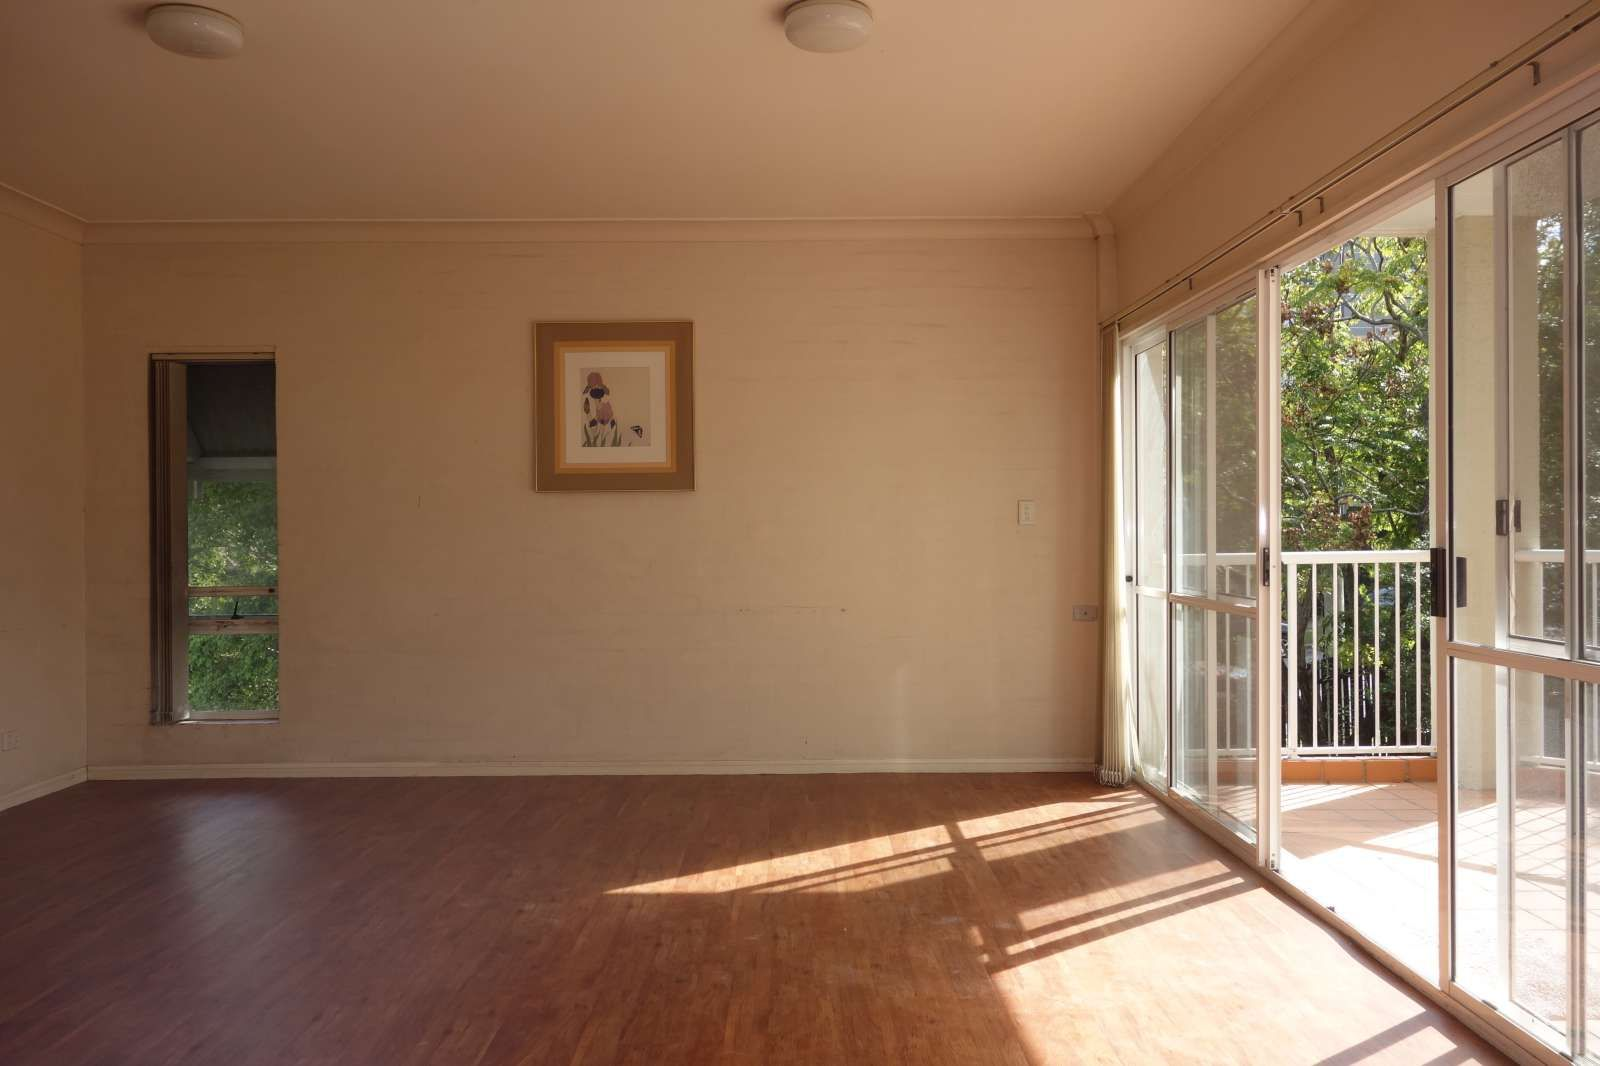 16/84 Musgrave Road, Indooroopilly QLD 4068, Image 2